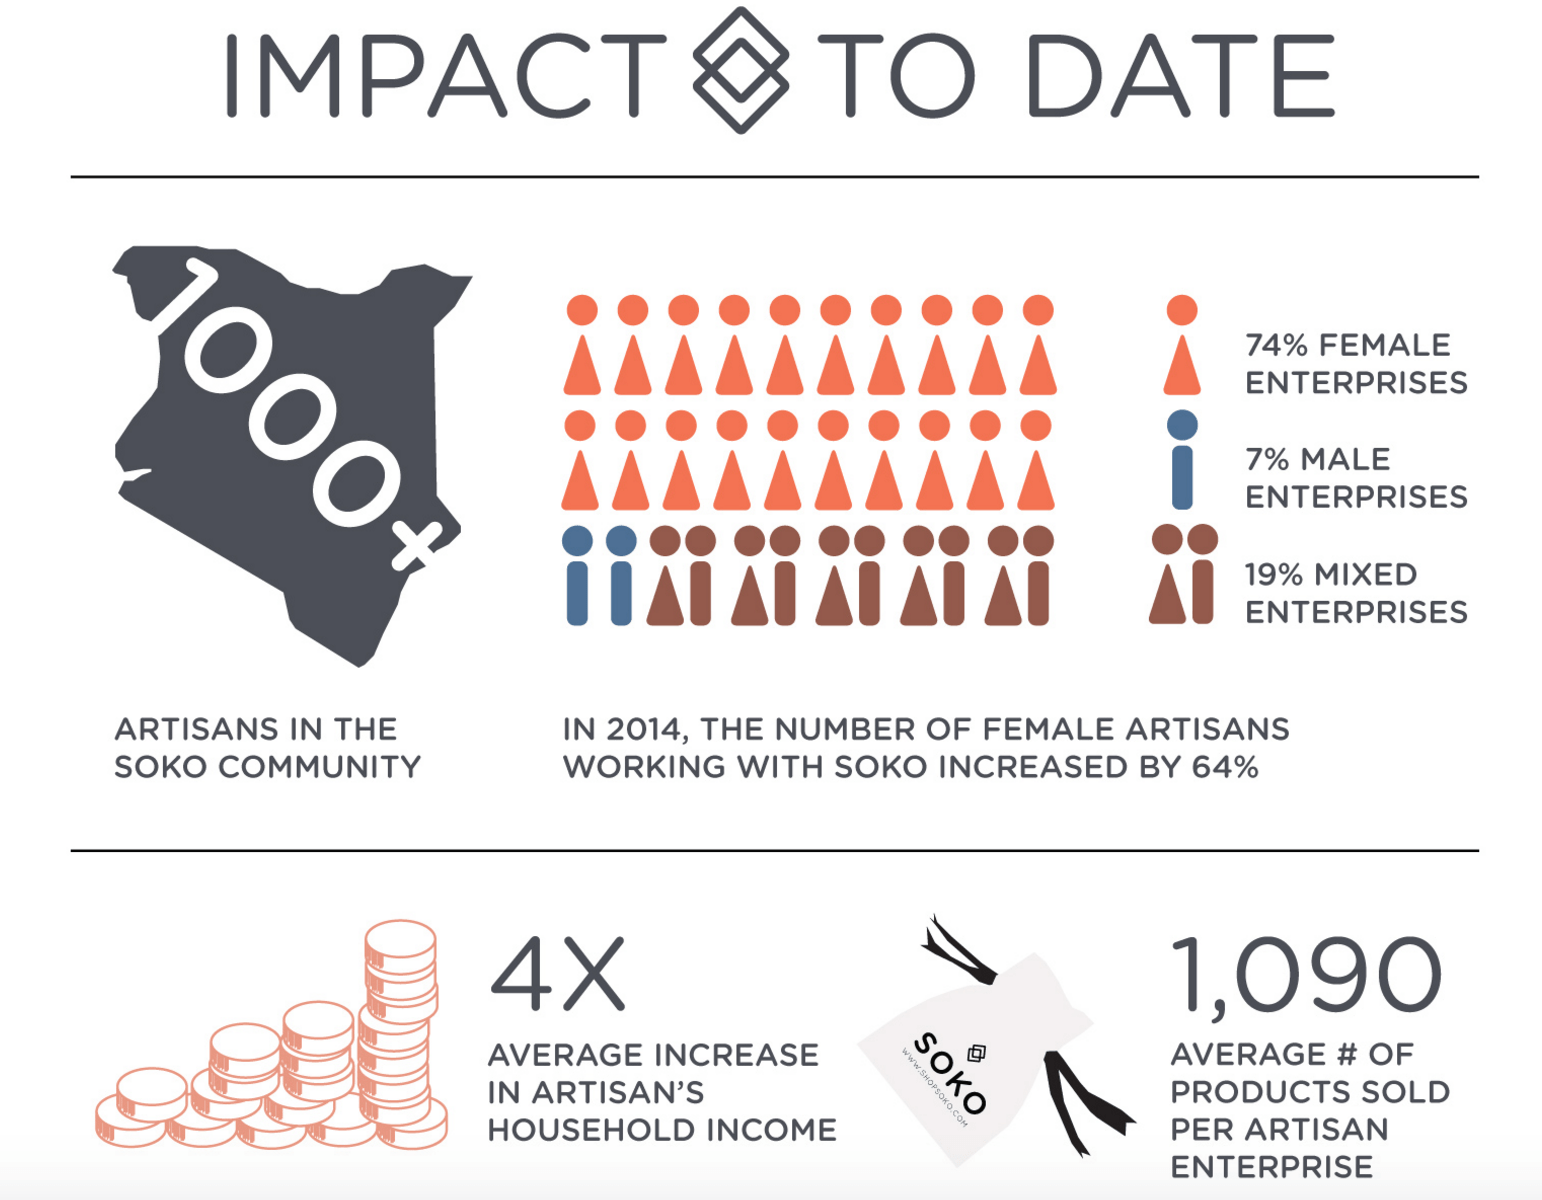 Infographic of Soko's impact up to date includes statistics on how artisans increased their household income on average by 4x.